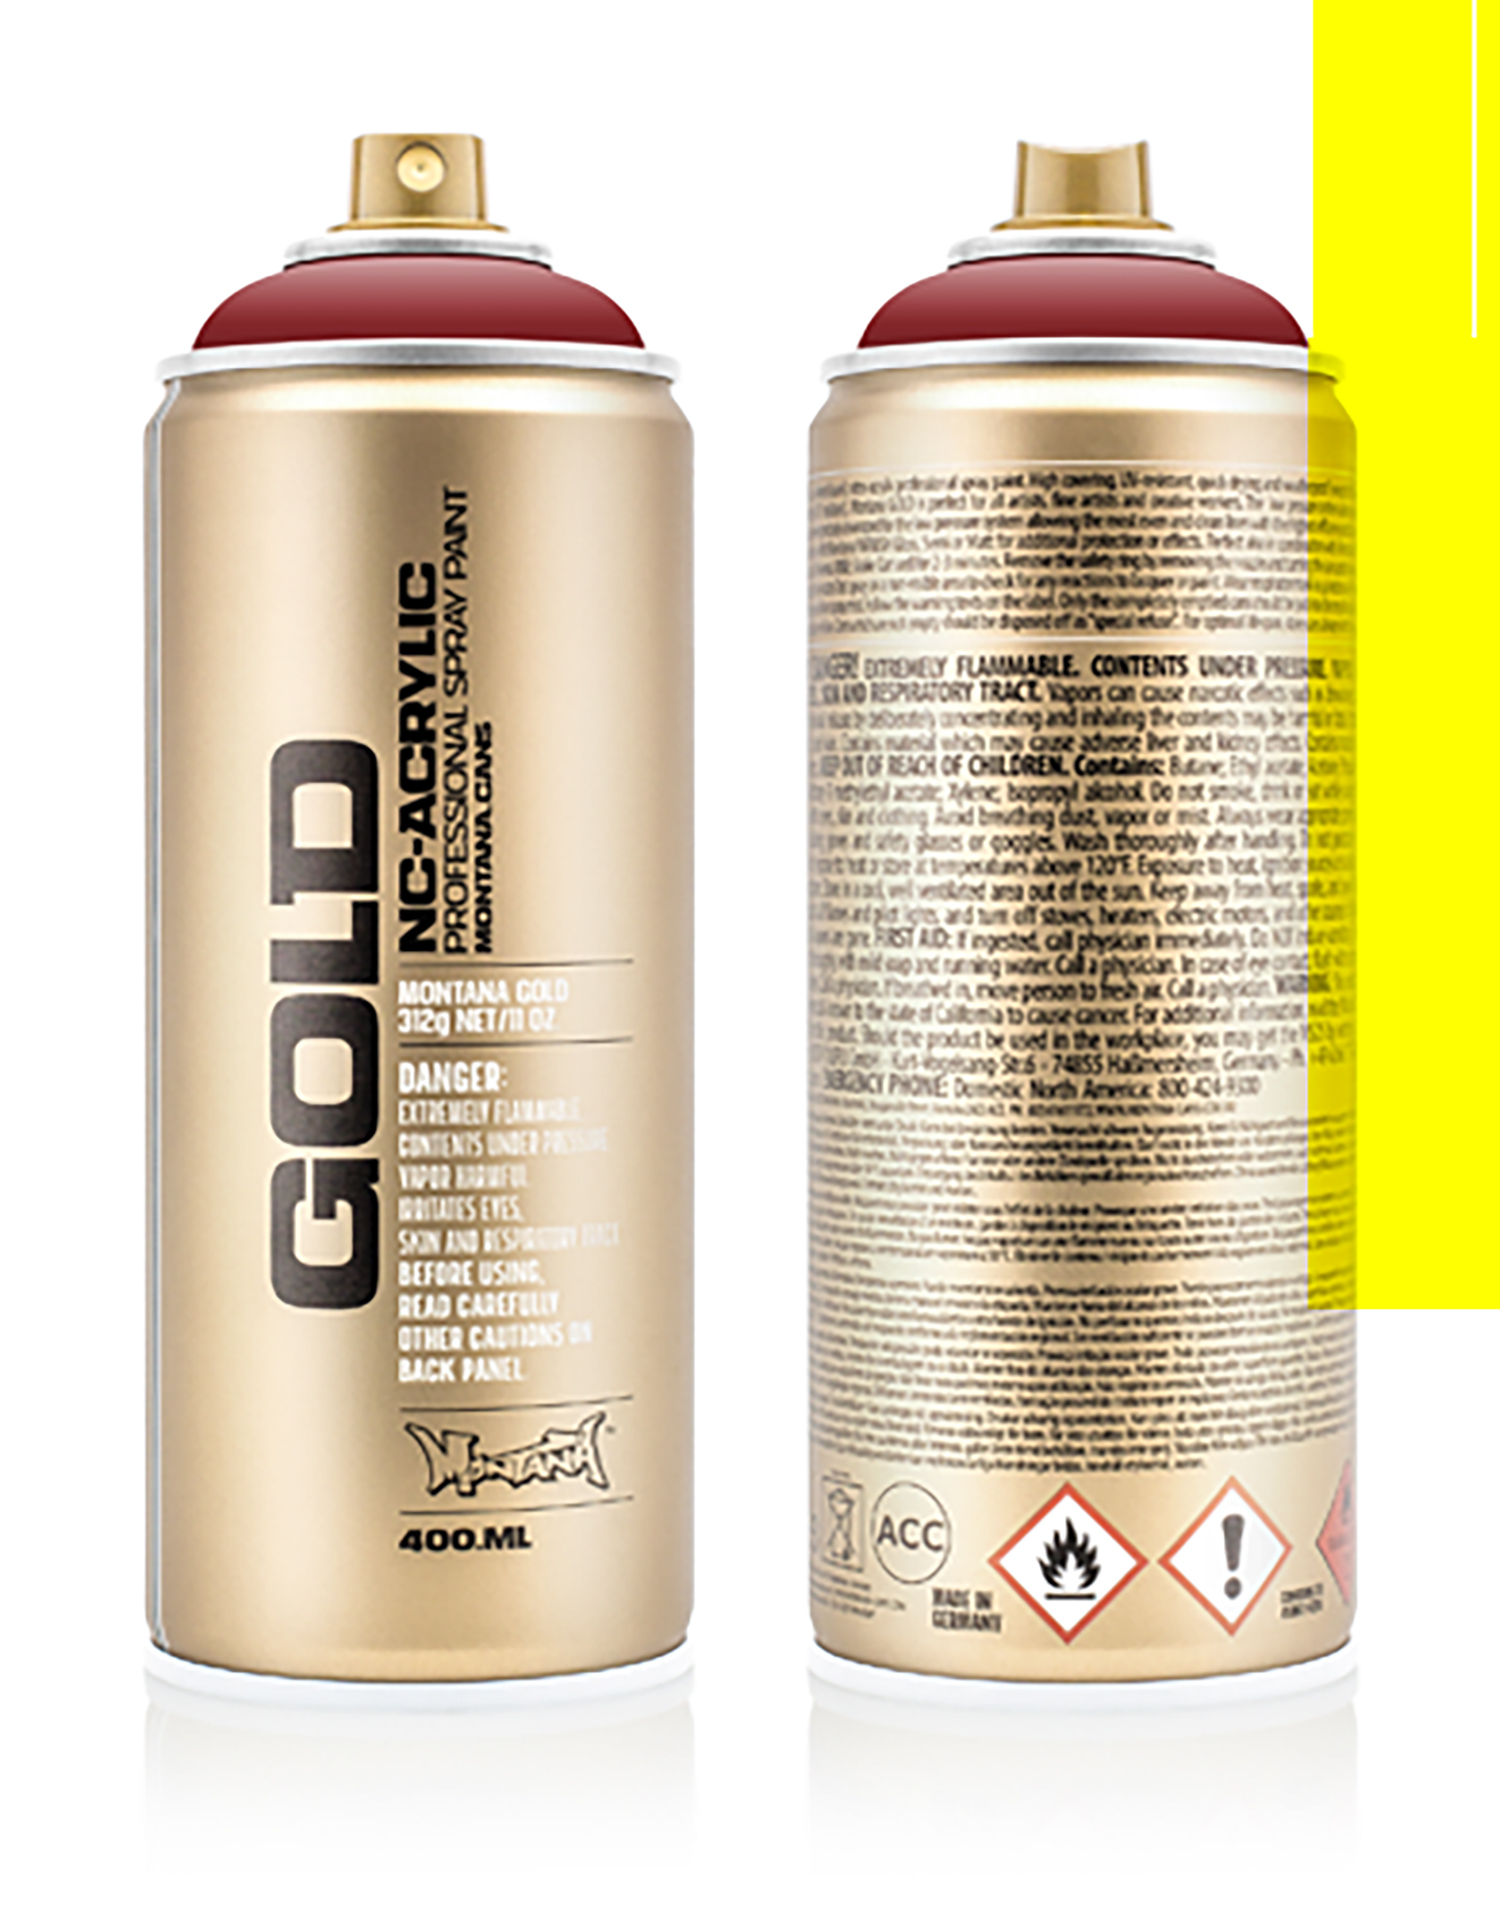 MONTANA-GOLD-SPRAY-400ML-G-8110